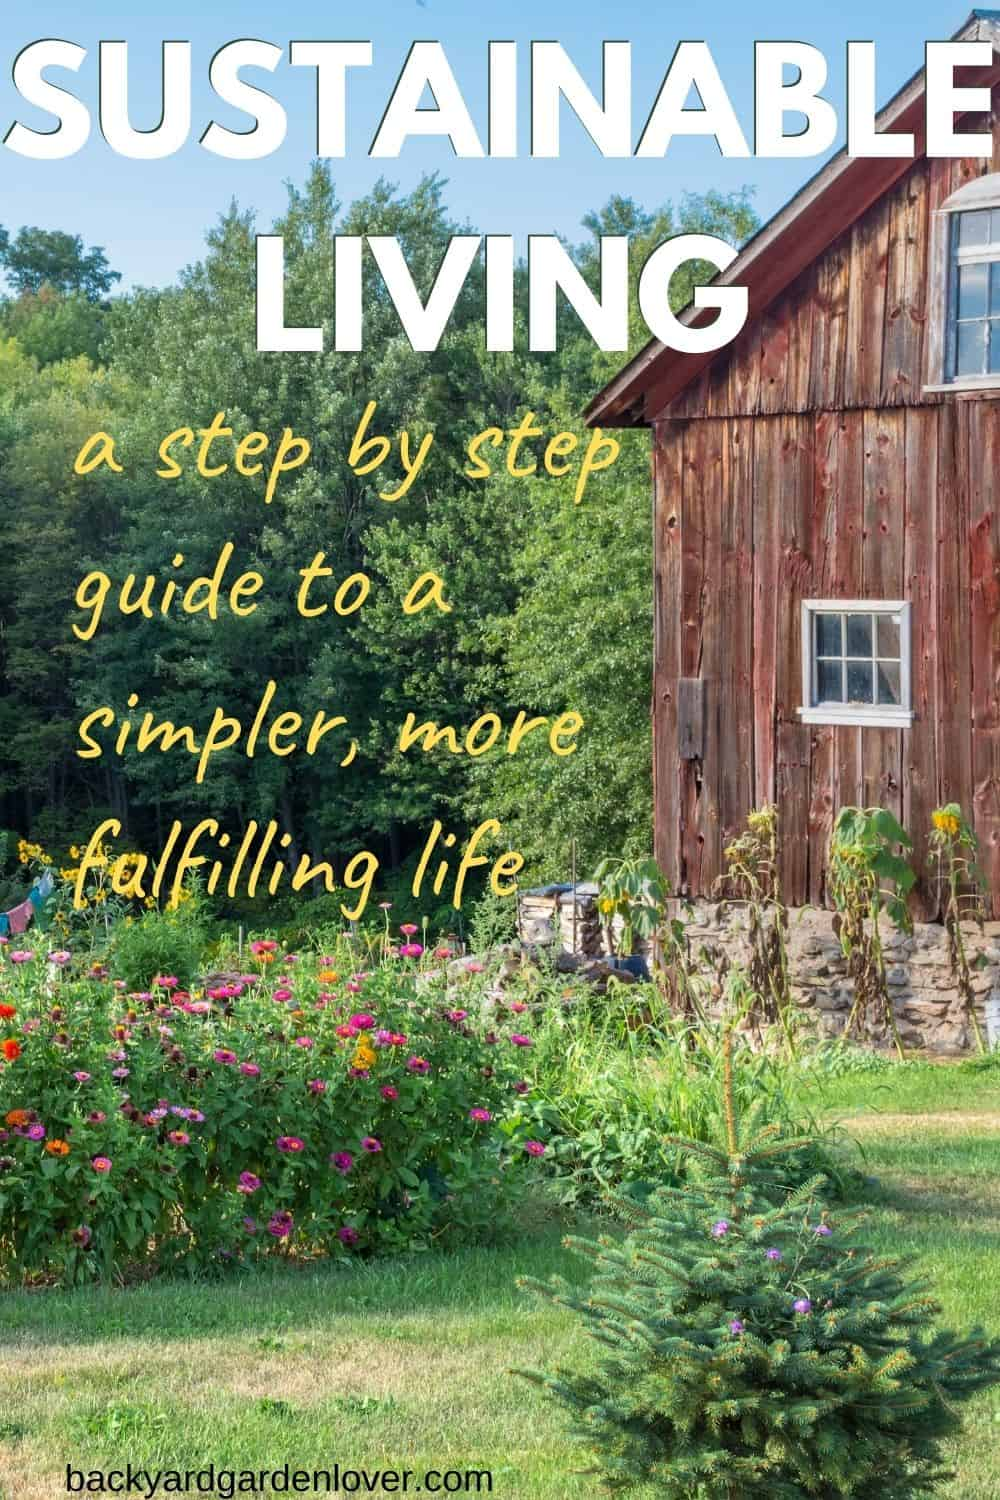 Sustainable living - a step by step guide to a simpler, more fulfilling life - Pinterest image